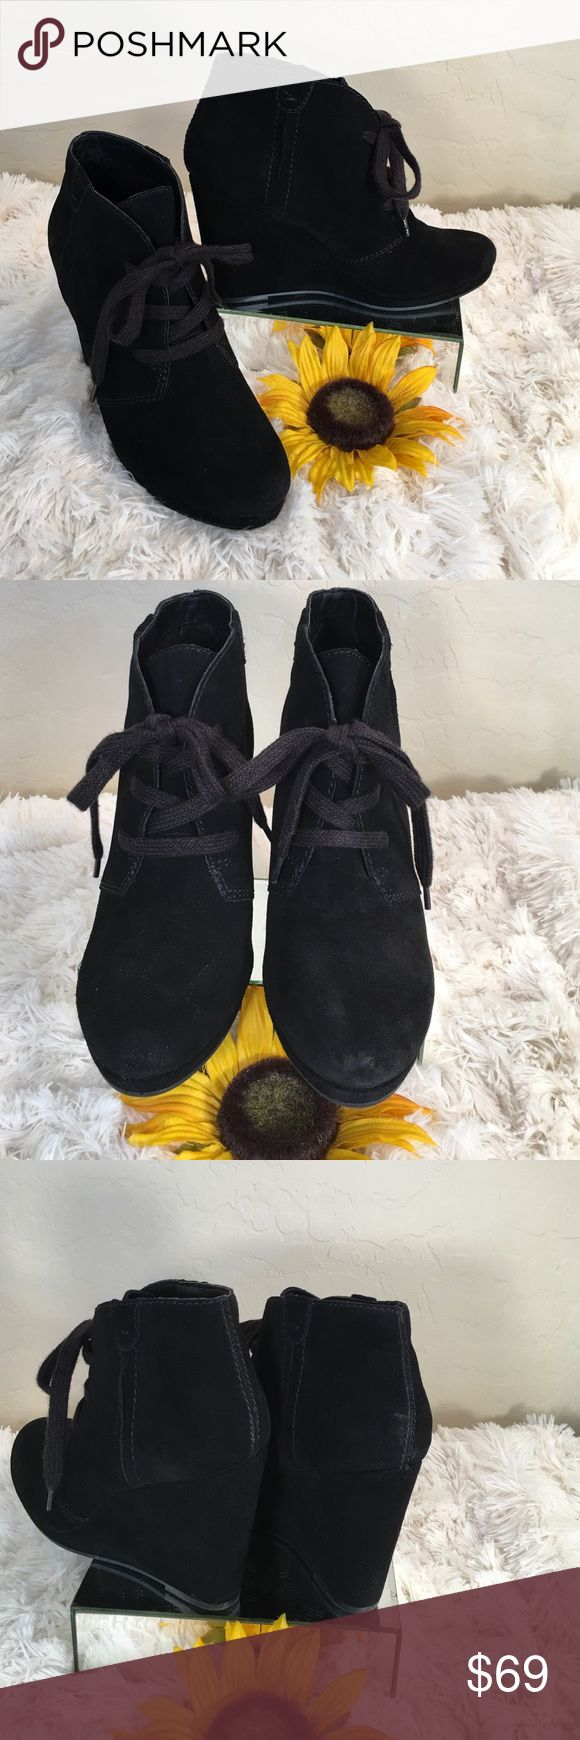 """Dolce Vita Brand New Black Suede Wedge Boots Dolce Vita NEW Chic Black Suede Lace up Wedge Boots!  Cool & Casual with a a comfortable 4"""" Wedge Heel. Comfortable Rubber sole! Dolce Vita Shoes Ankle Boots & Booties"""